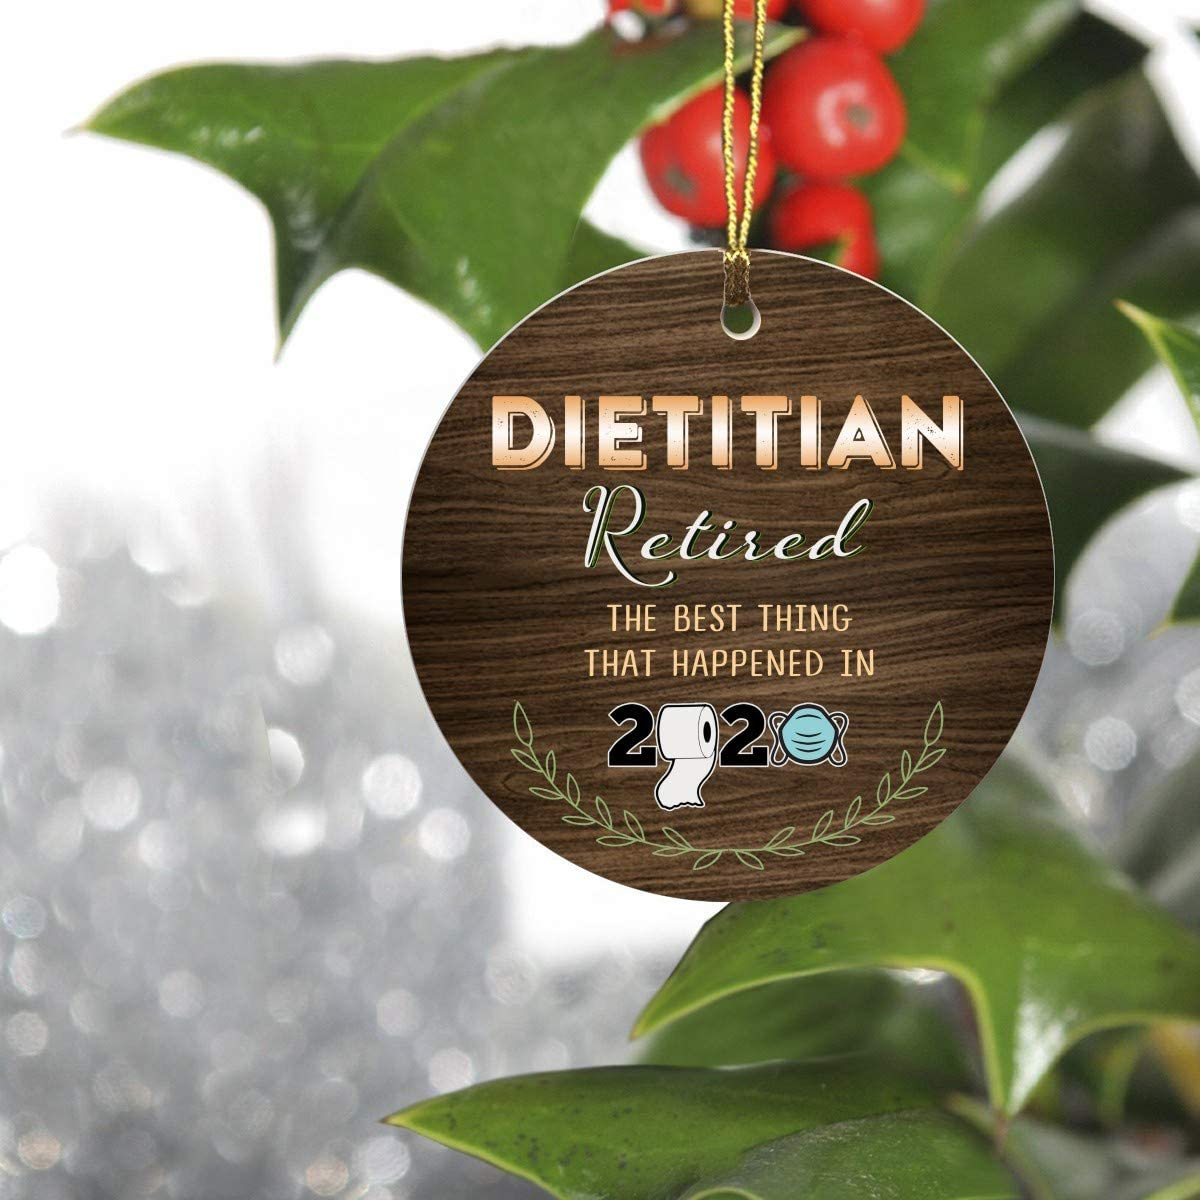 First Retired Christmas 2020 Ornament Gift - Dietitian Retired The Best Thing That Happened in 2020 - Keepsake Man Woman Office Company Job Retirement Party 3